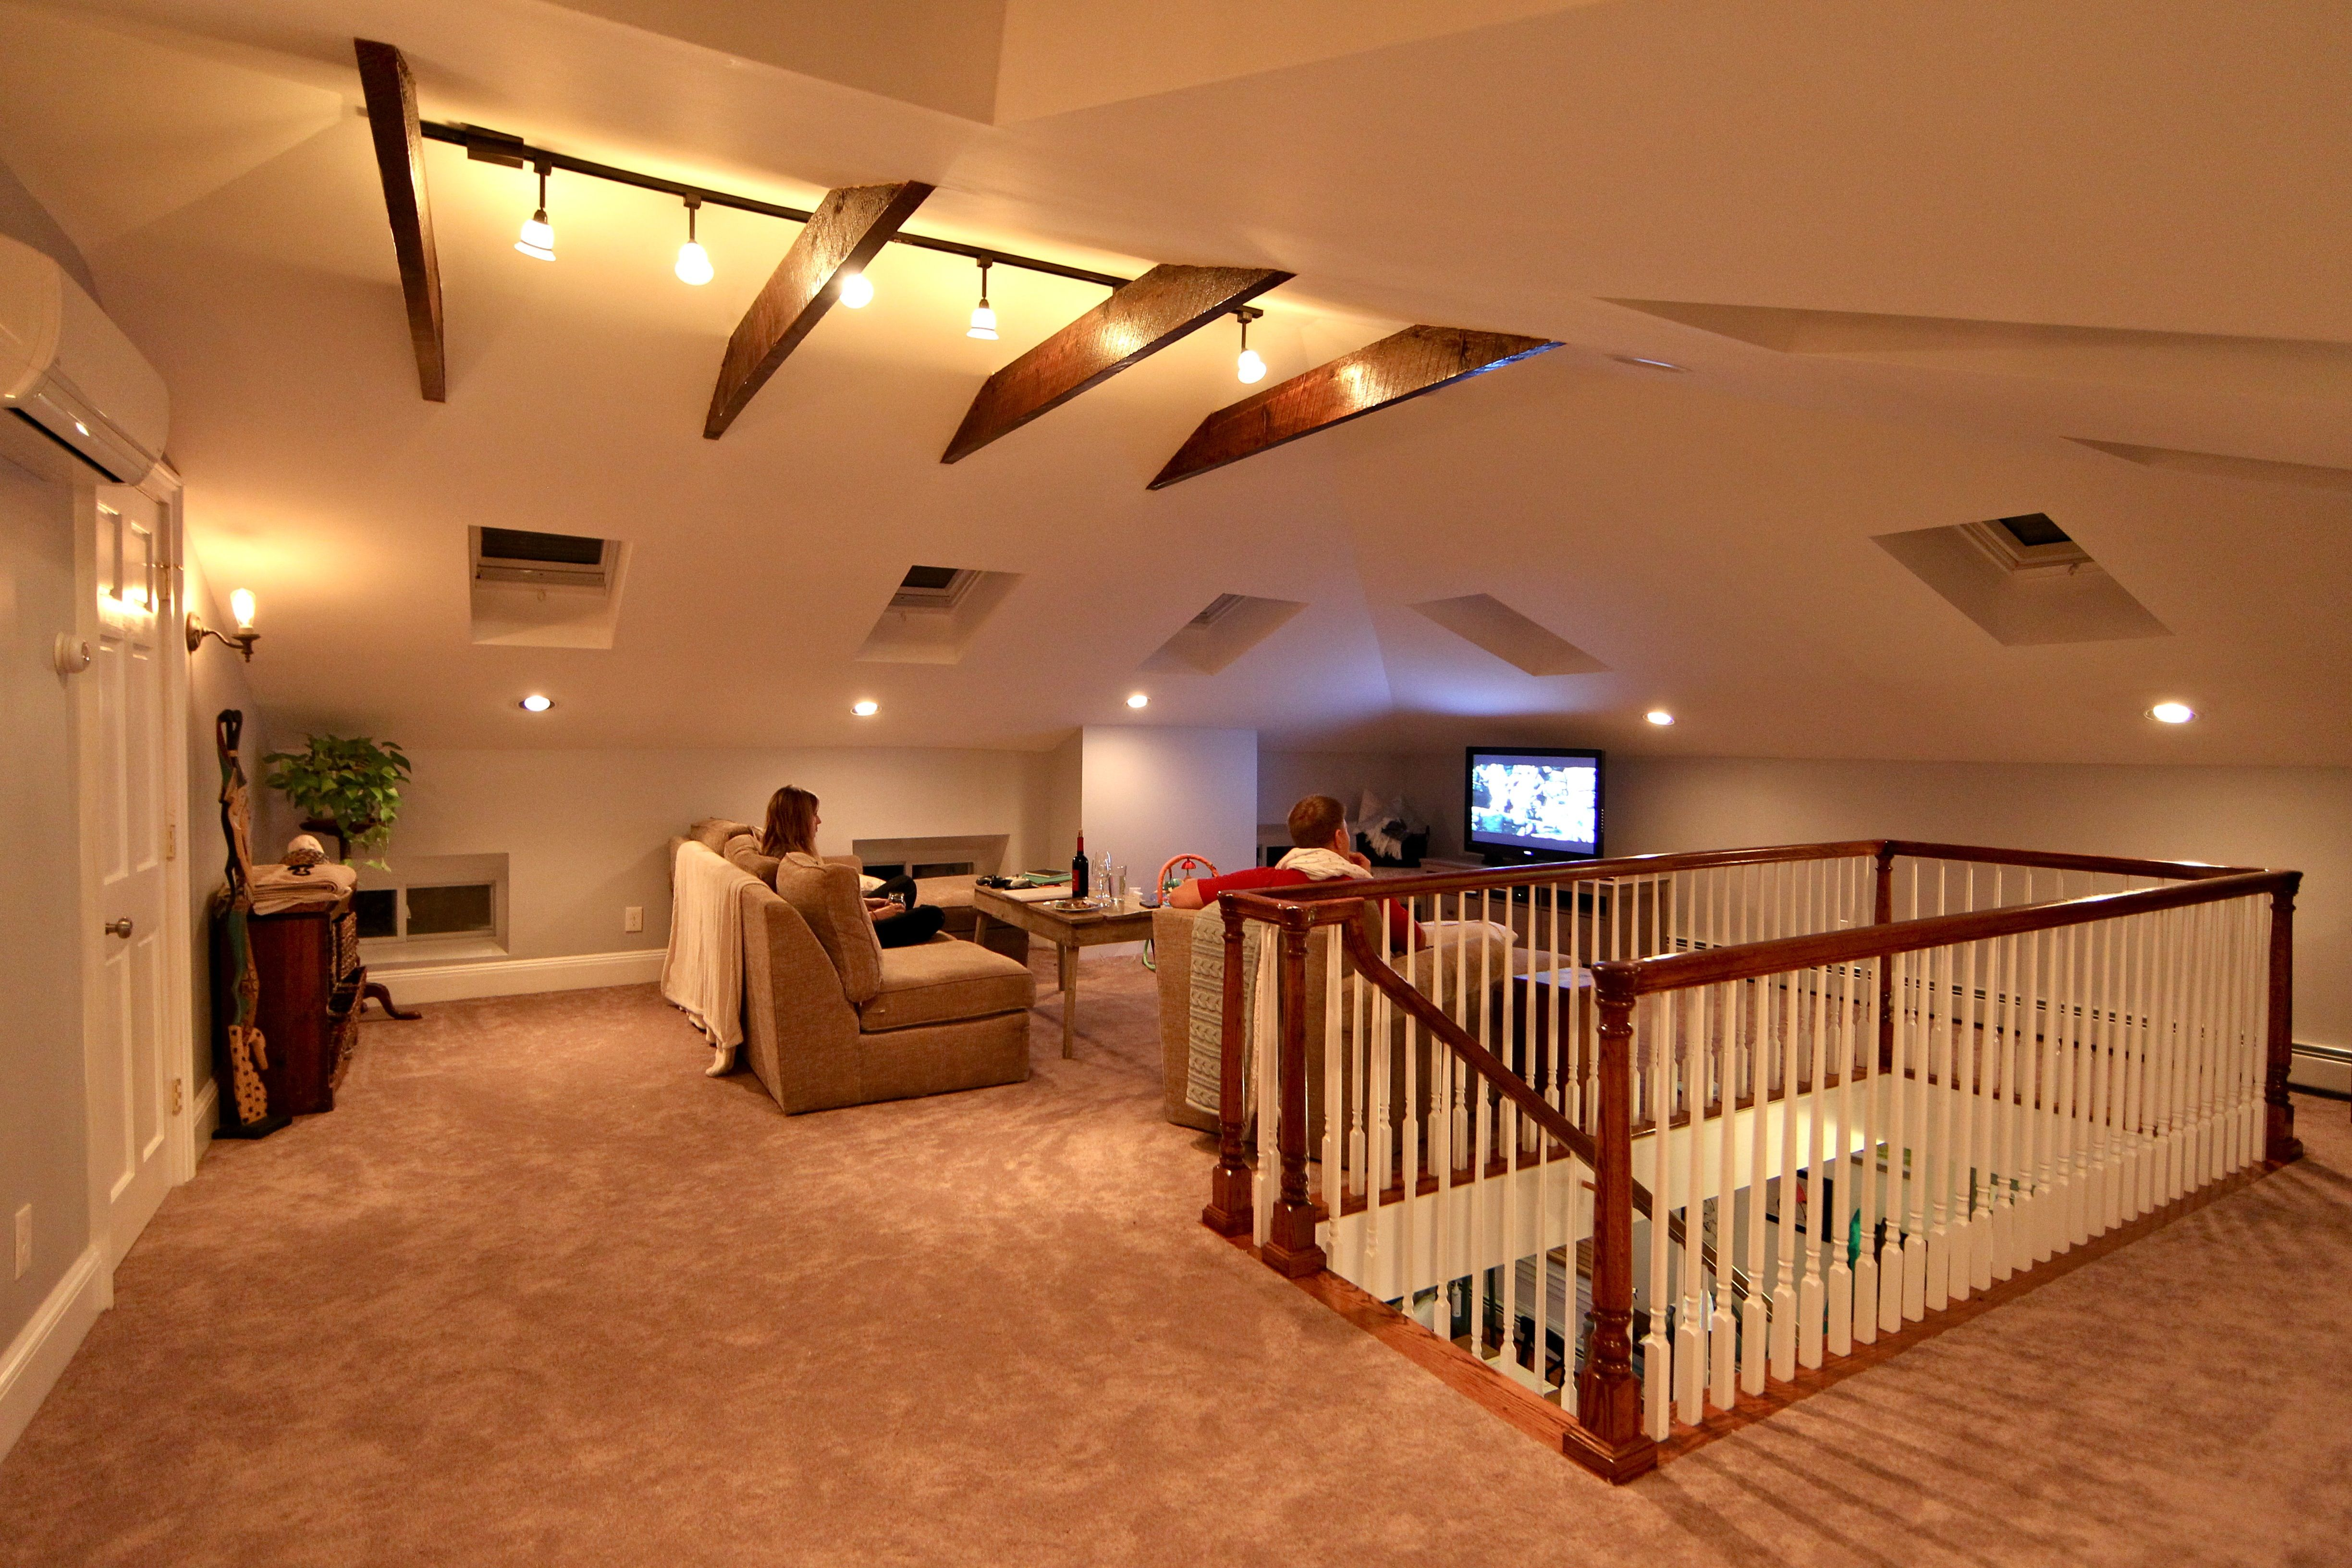 How Our Attic Addition Turned Out Attic Renovation Attic House Attic Design